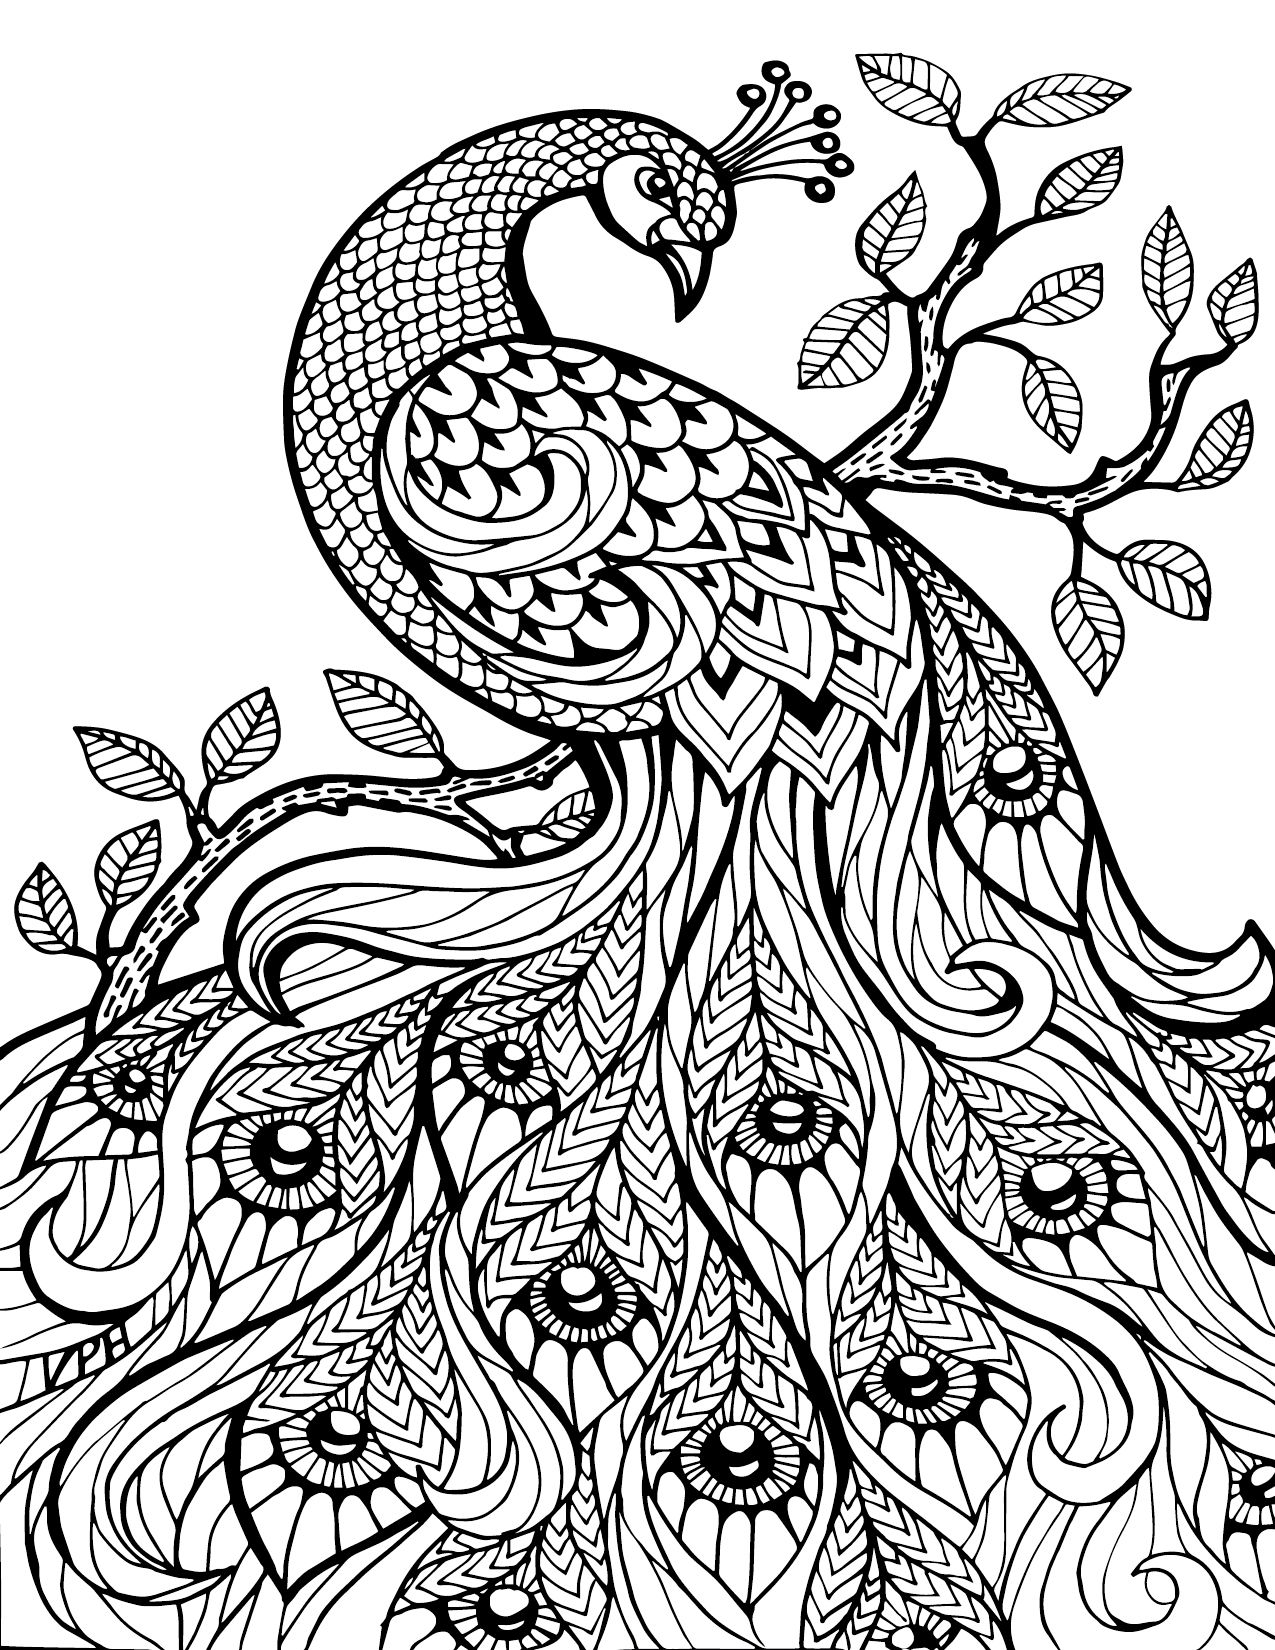 Free coloring pages for adults - Free Printable Coloring Pages For Adults Only Image 36 Art Davlin Publishing